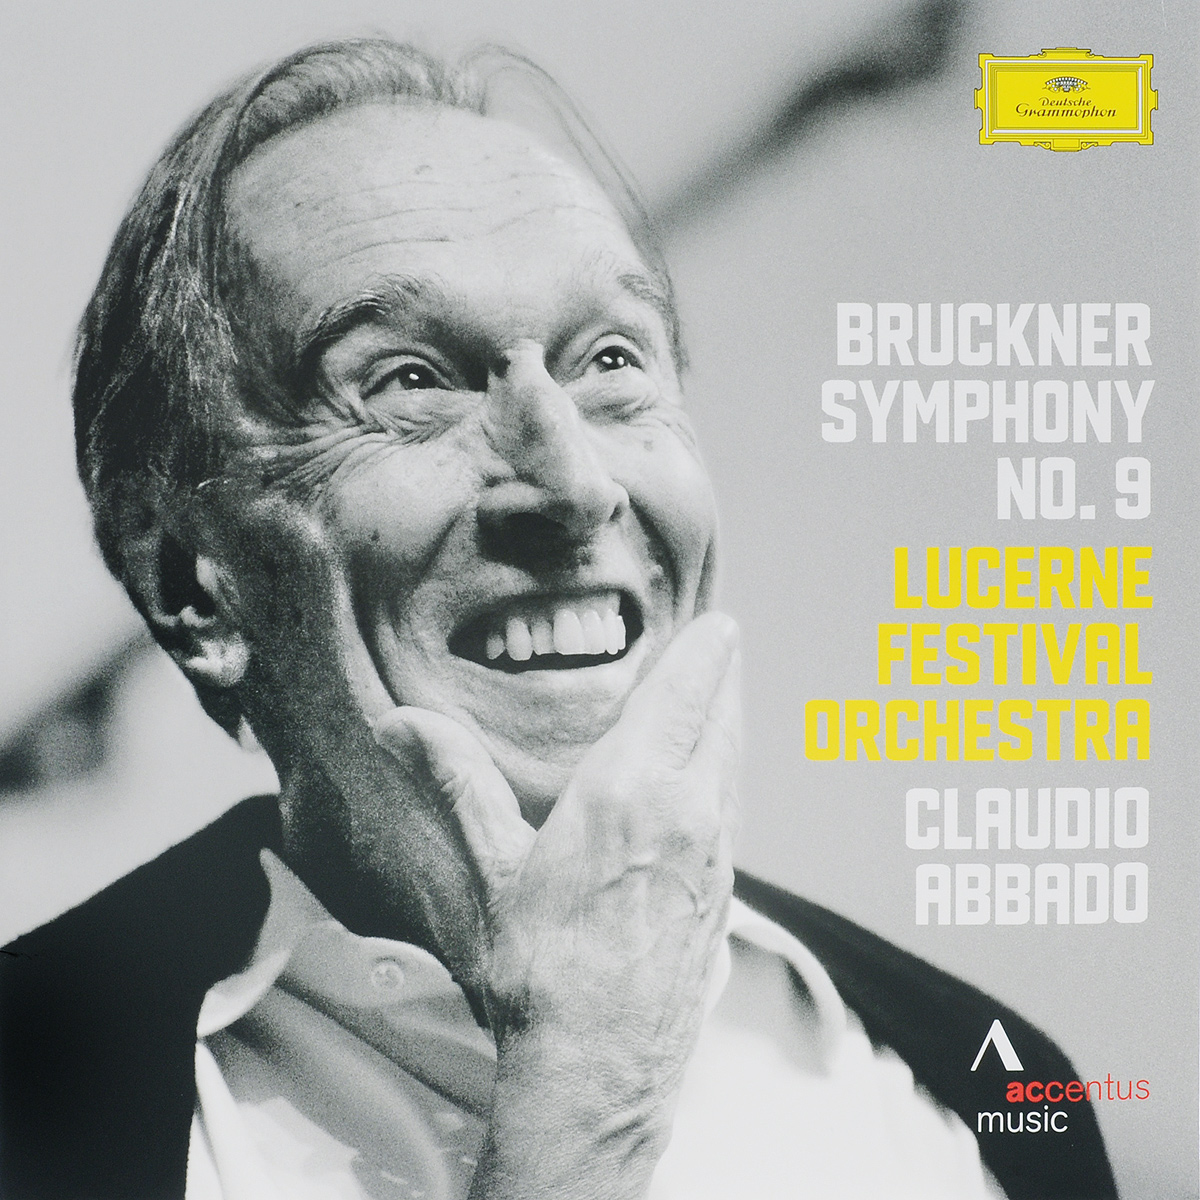 Lucerne Festival Orchestra,Клаудио Аббадо Bruckner: Symphony No. 9. Lucerne Festival Orchestra / Claudio Abbado (2 LP) клаудио аббадо orchestra mozart claudio abbado schubert the great c major symphony 2 lp